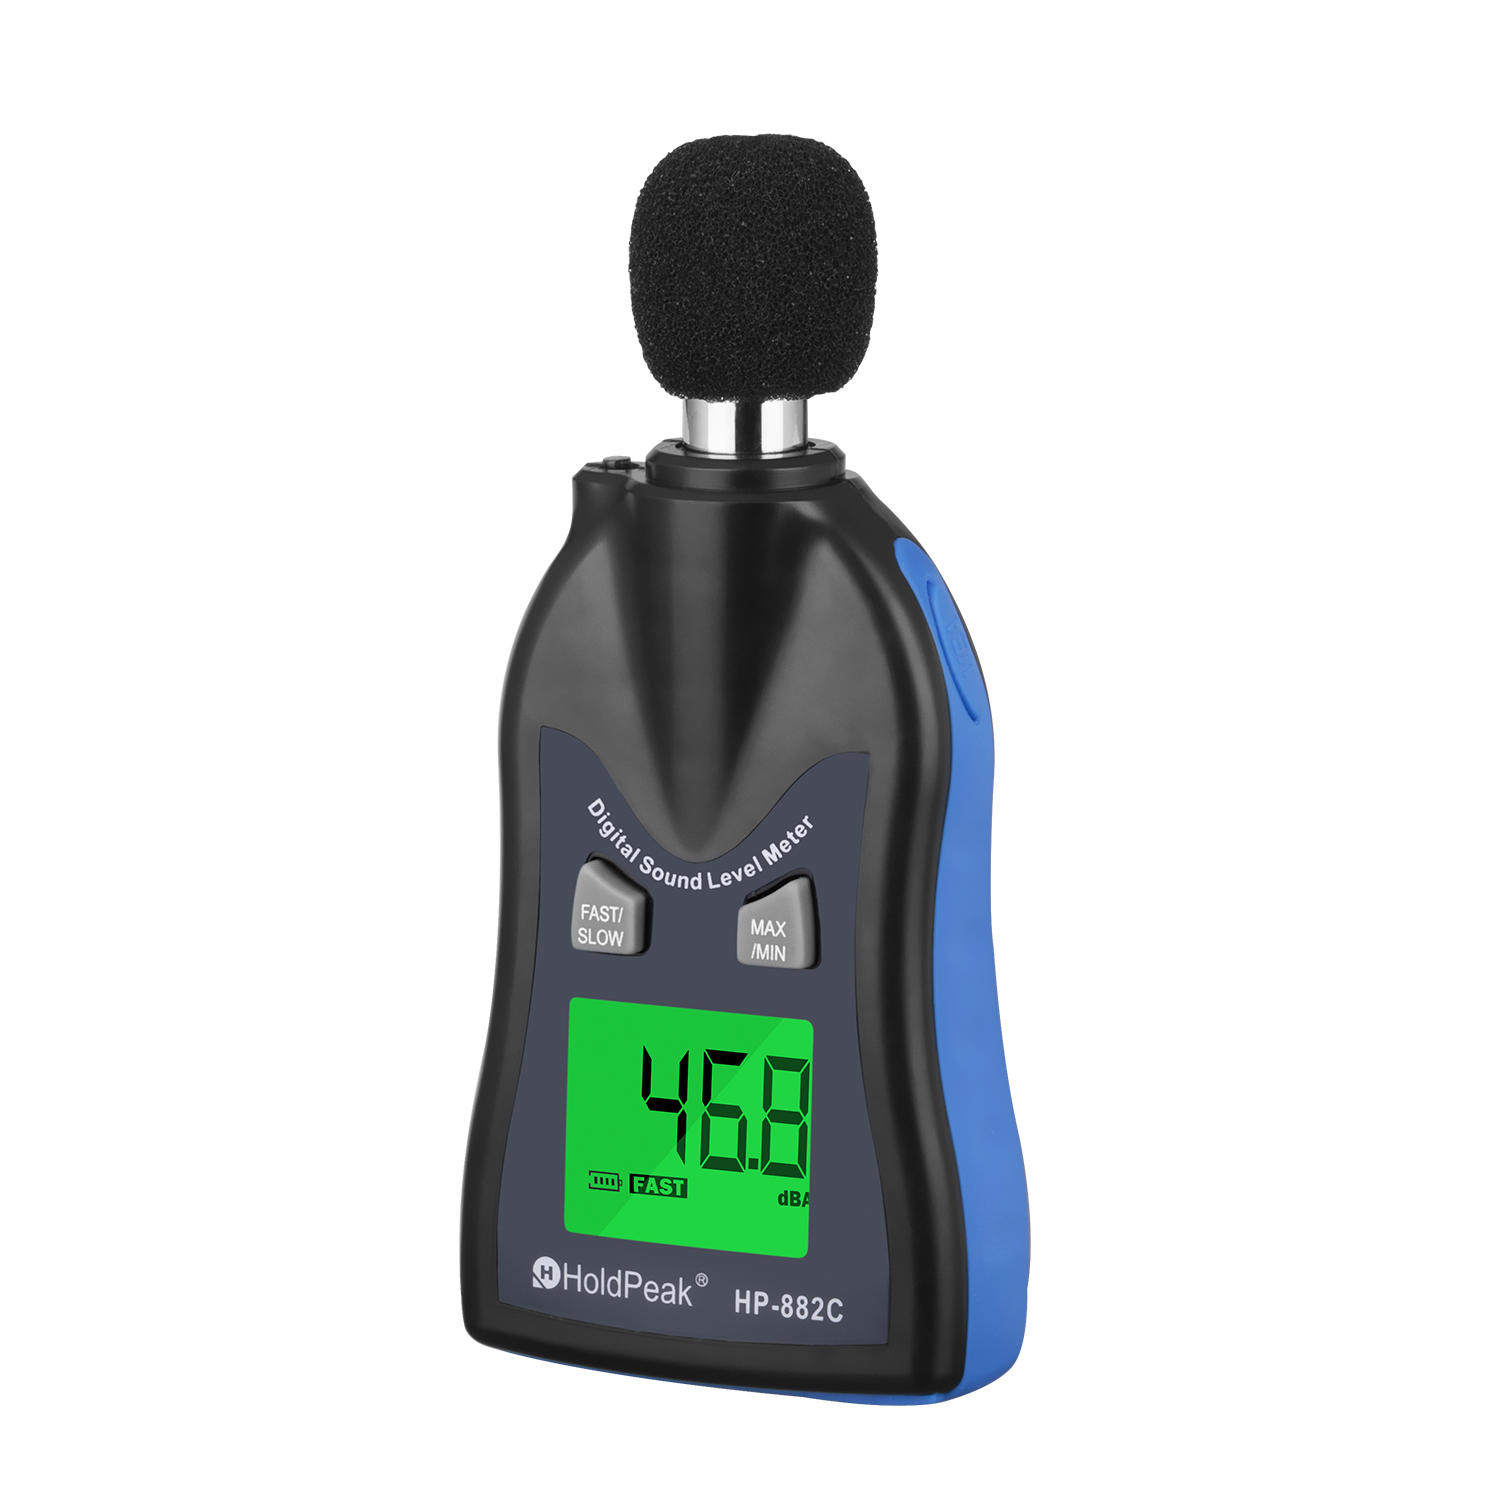 digital multi tester & digital sound level meter